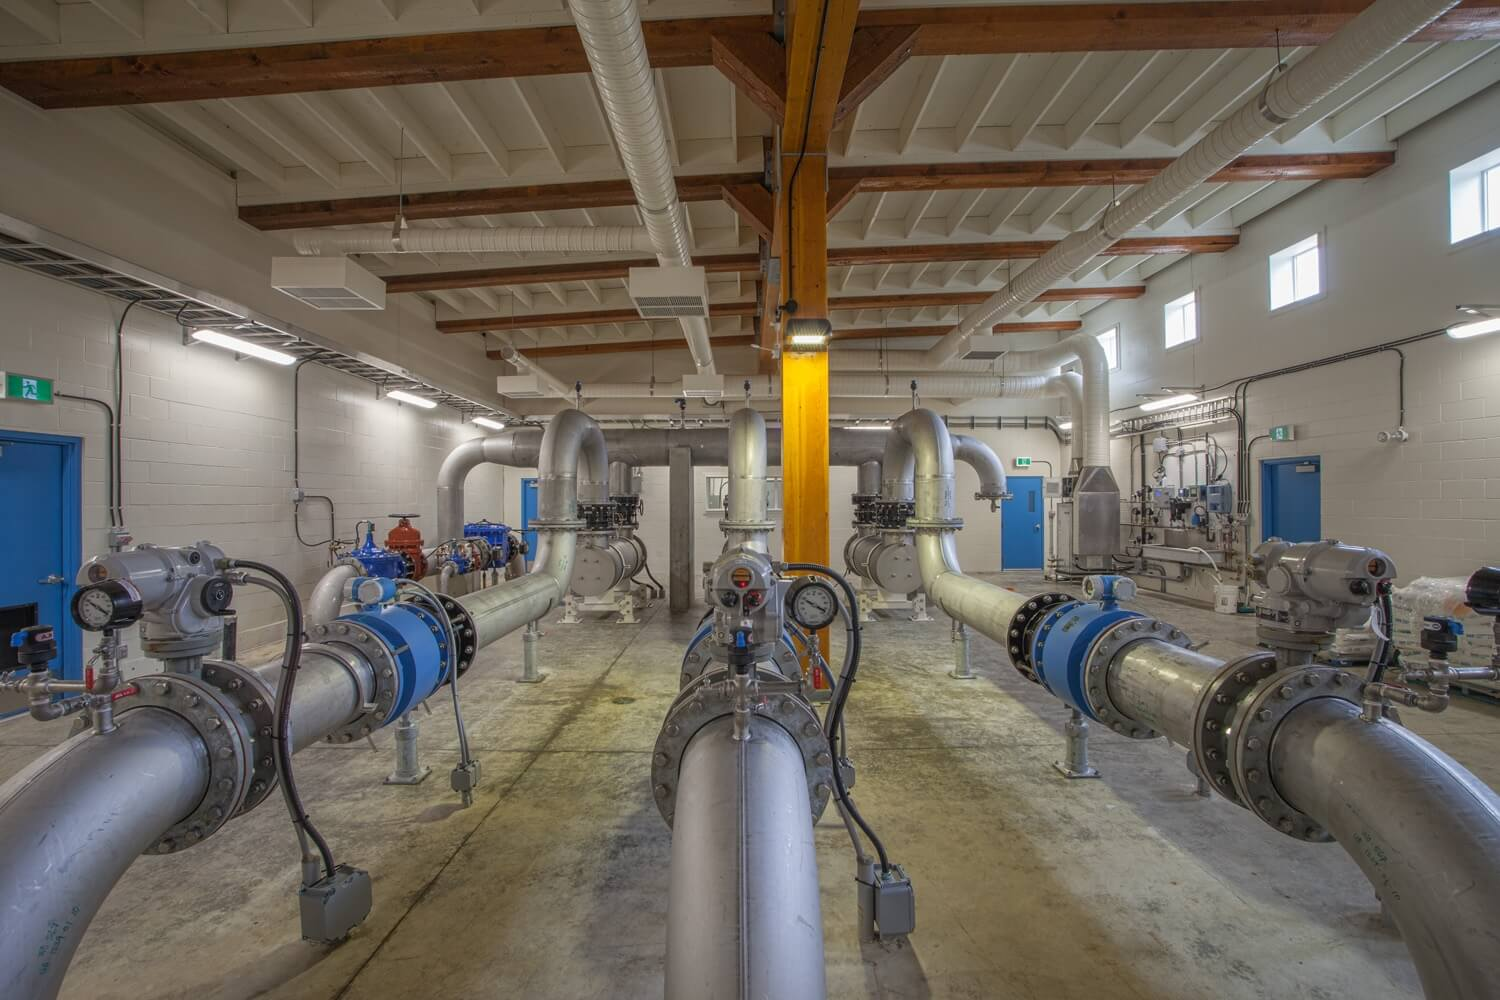 big plumbing pipes in water treatment plant